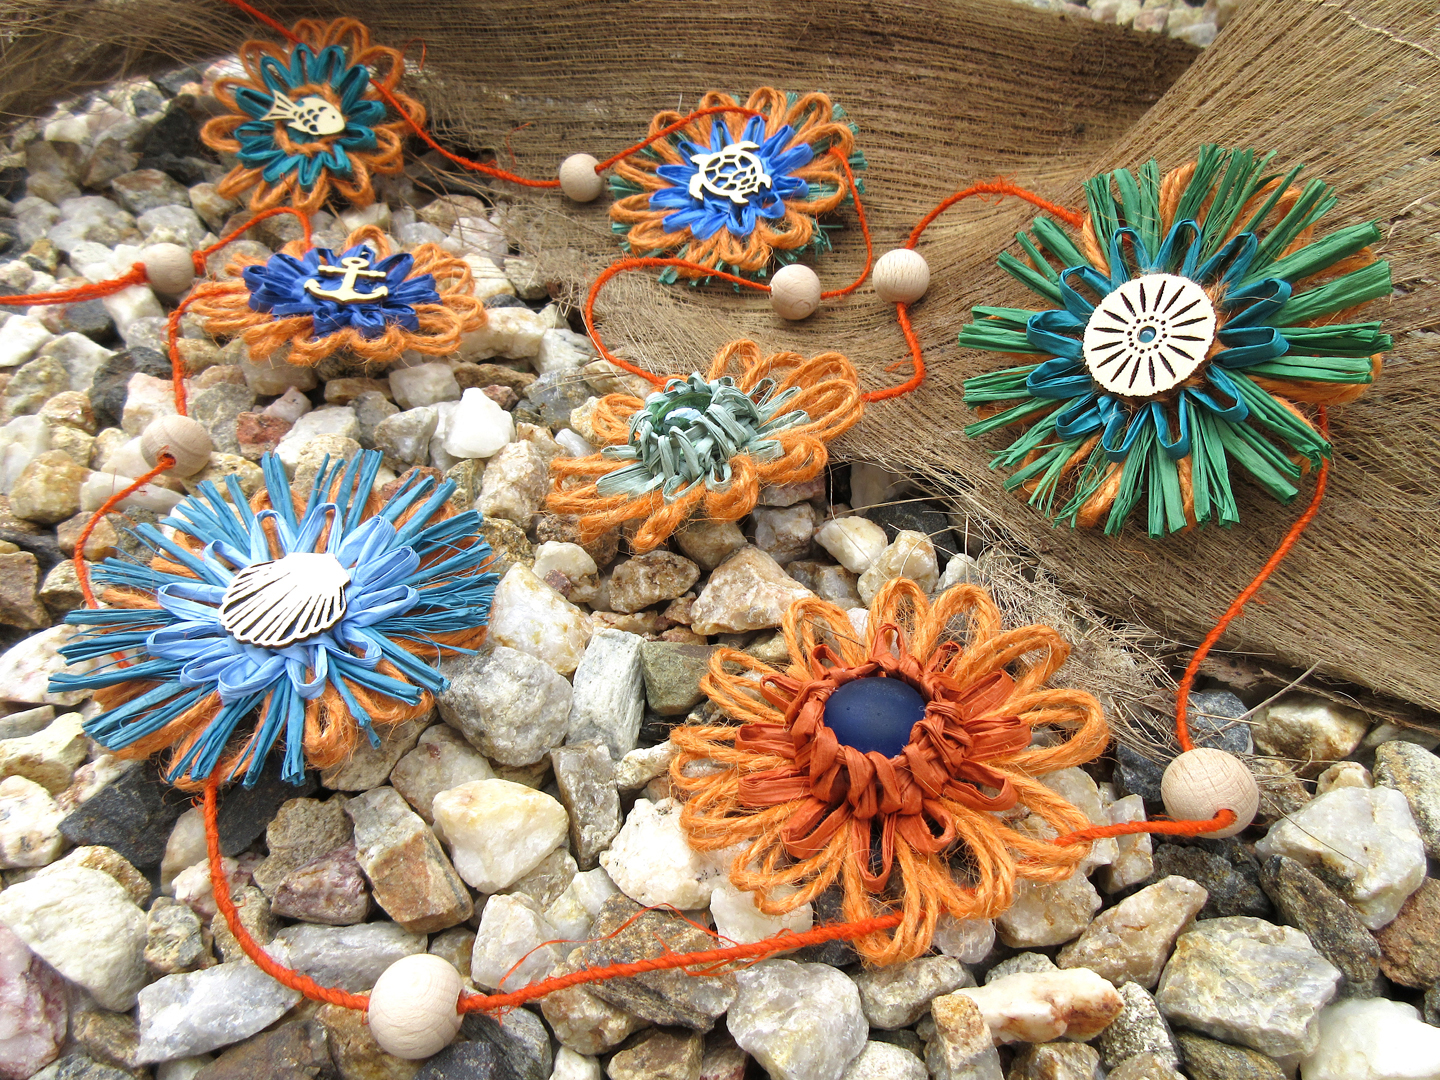 Blue, green and orange flower garland handmade by Marketa of M Decor Botanica from natural fibres like jute twine, hemp twine, raffia, paper raffia, paper string, and wool felt